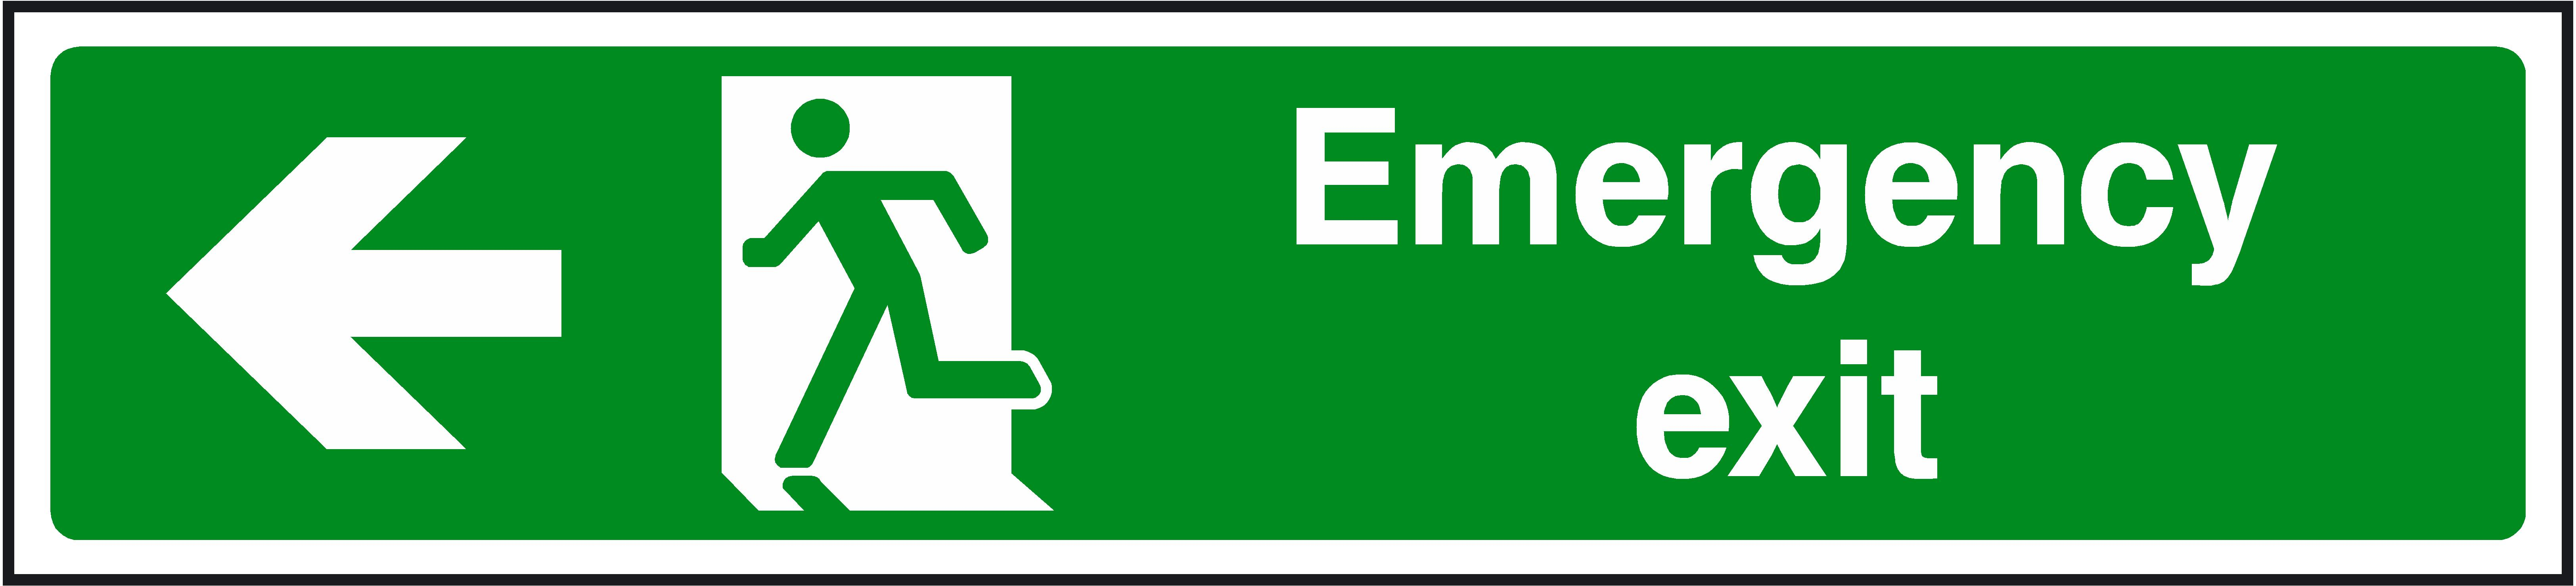 Emergency exit sign cliparts emergency exit sign safety equipment that every office should have buycottarizona Images